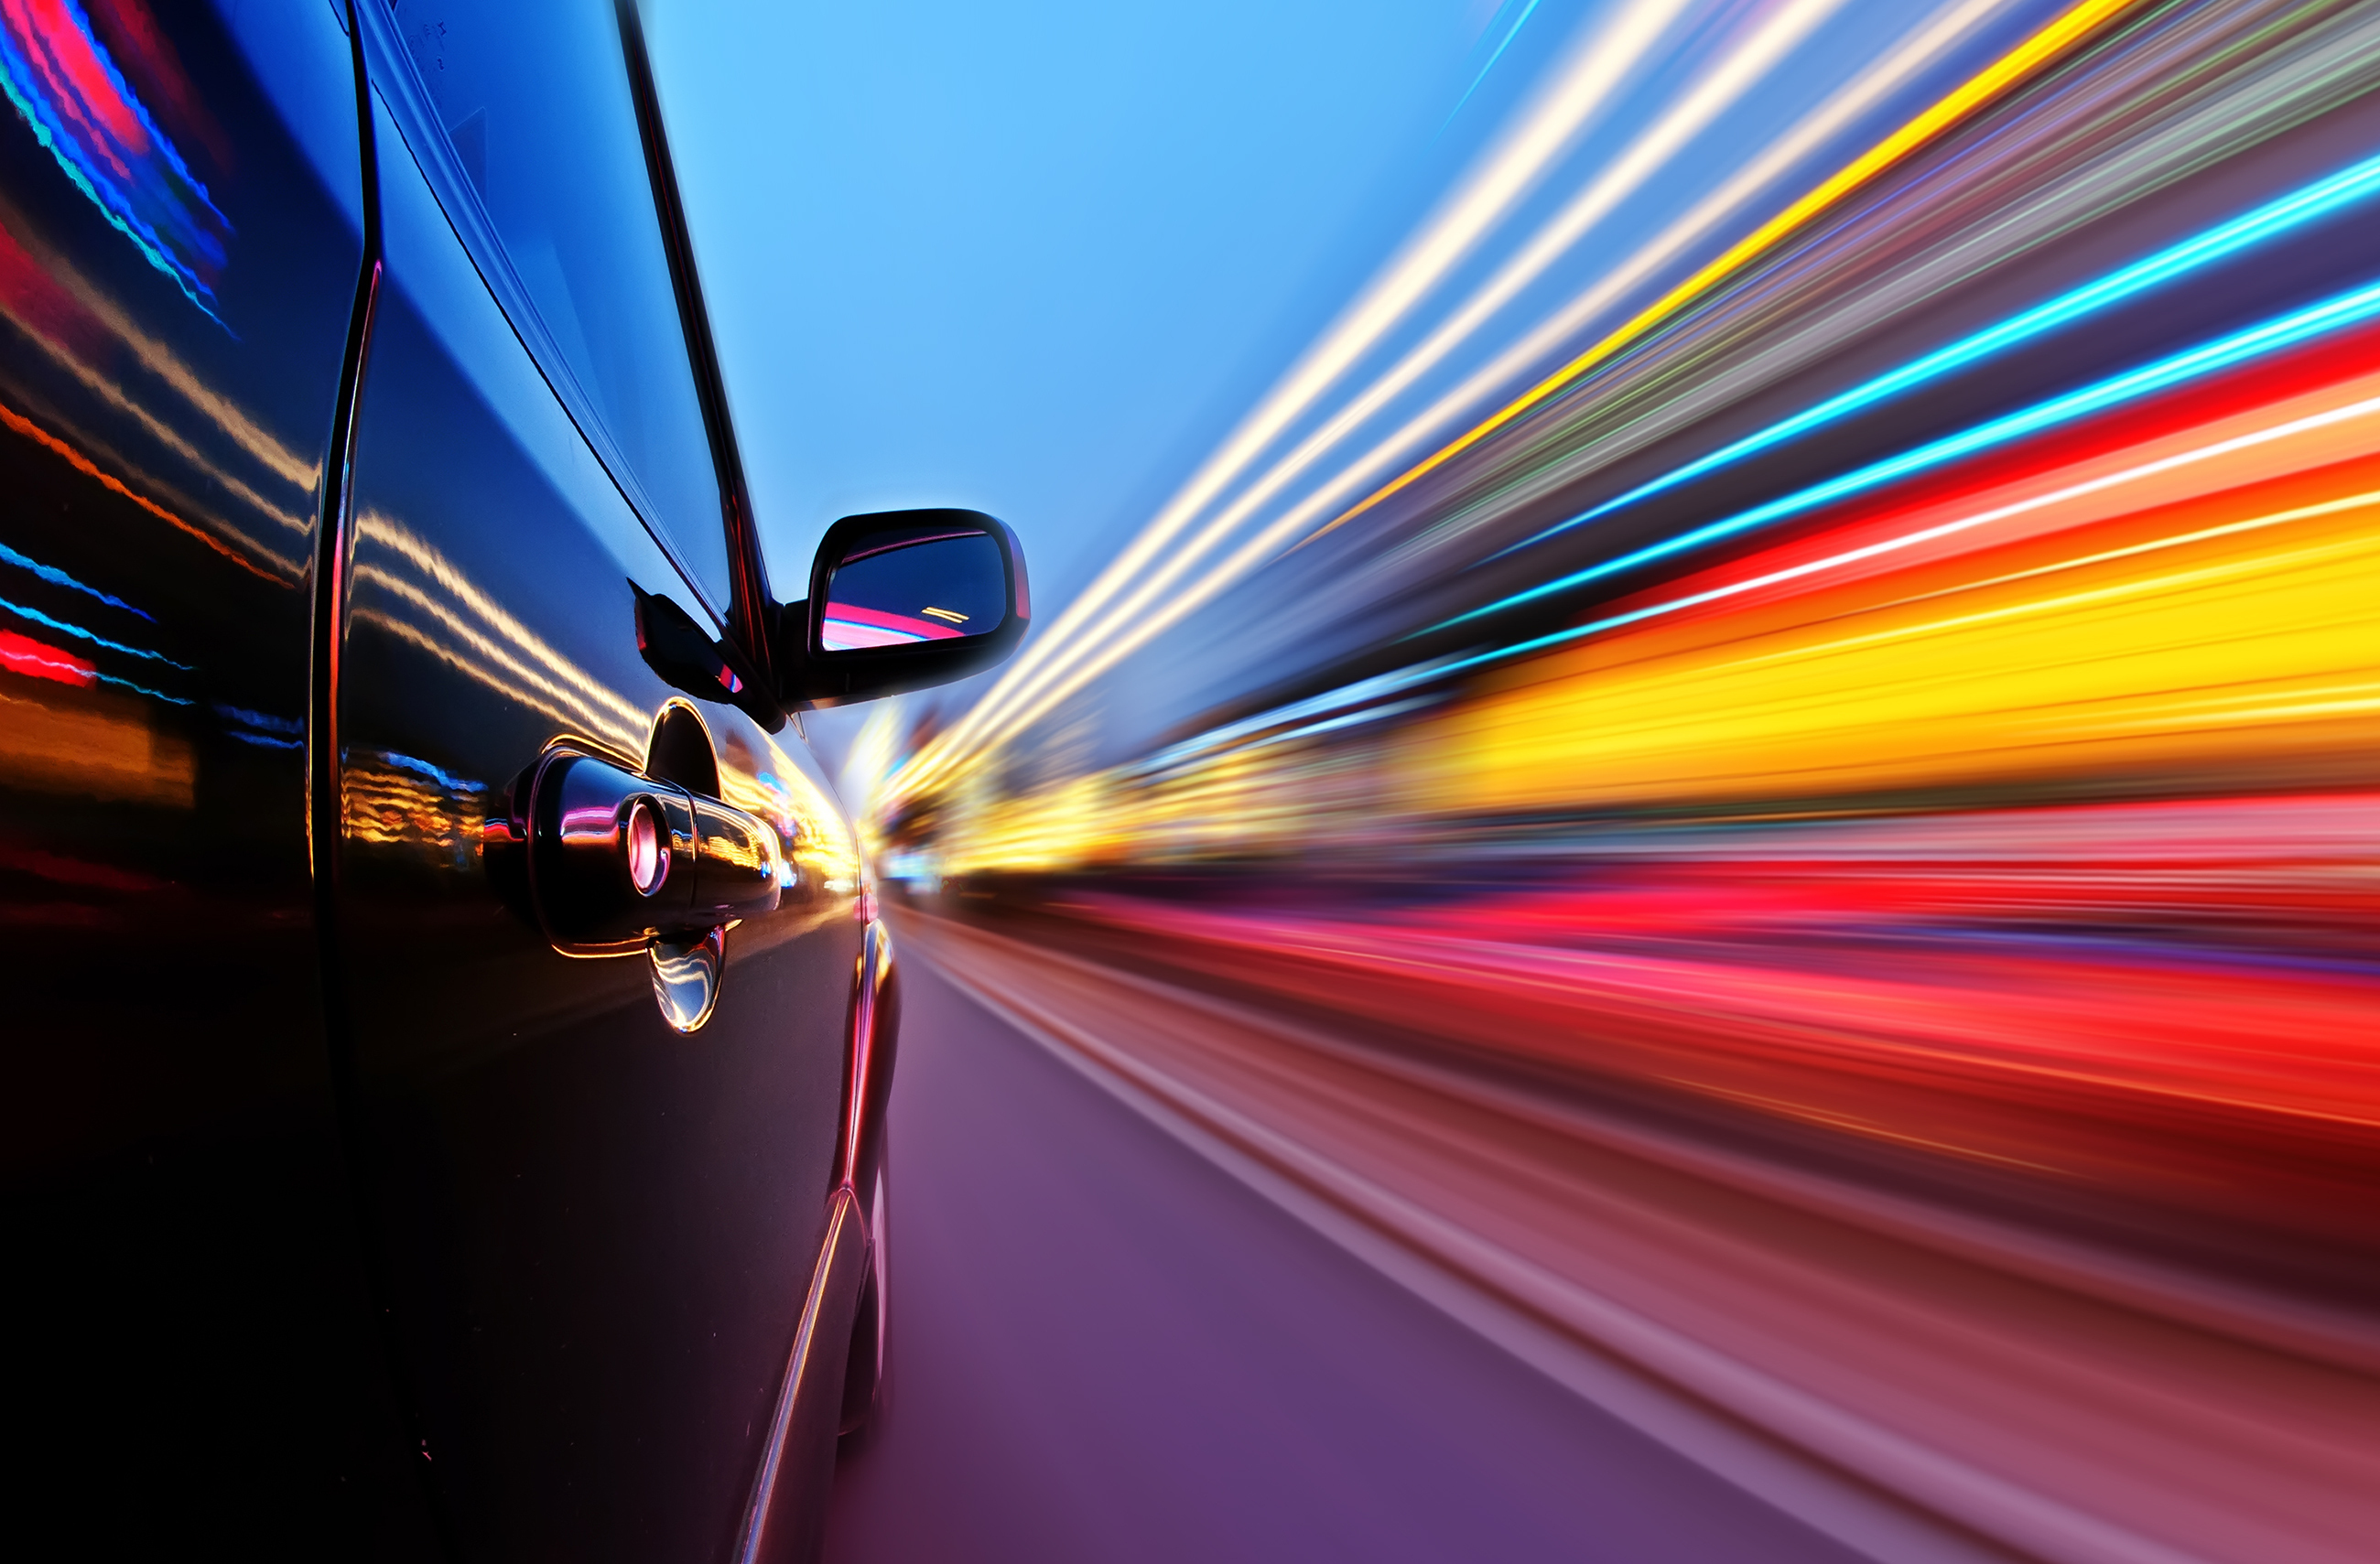 5 Connectivity Trends That Will Shape the Future of the Automotive Industry